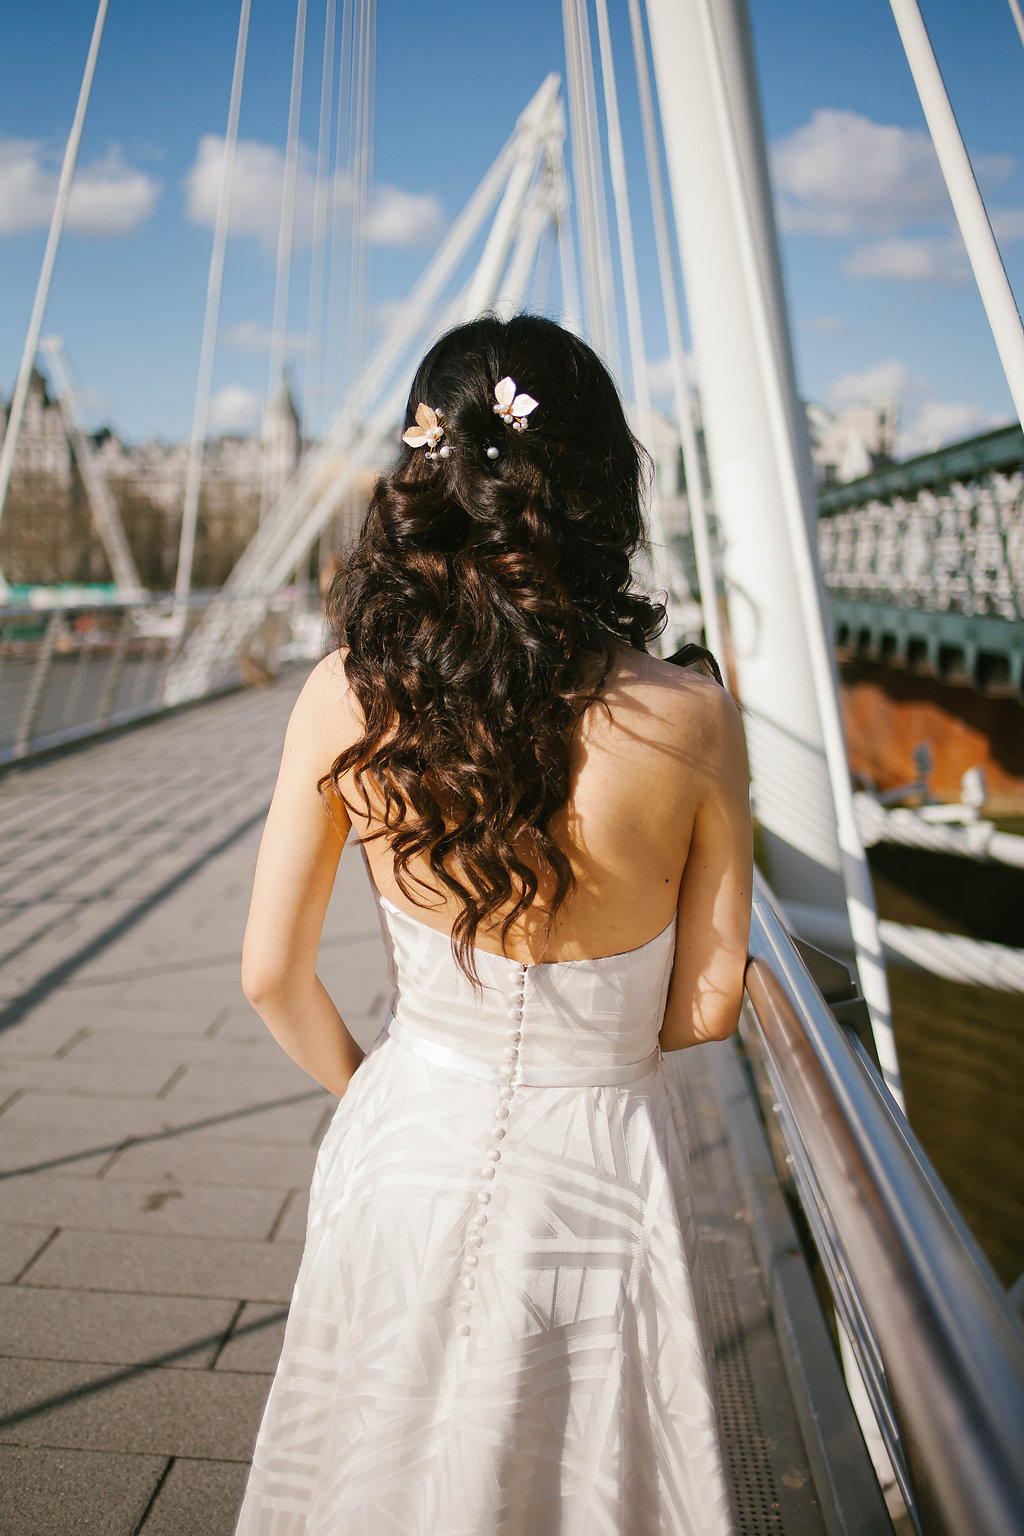 Nina Pang Photography - City Bride - London wedding - City wedding - Chinese wedding 15 (2)